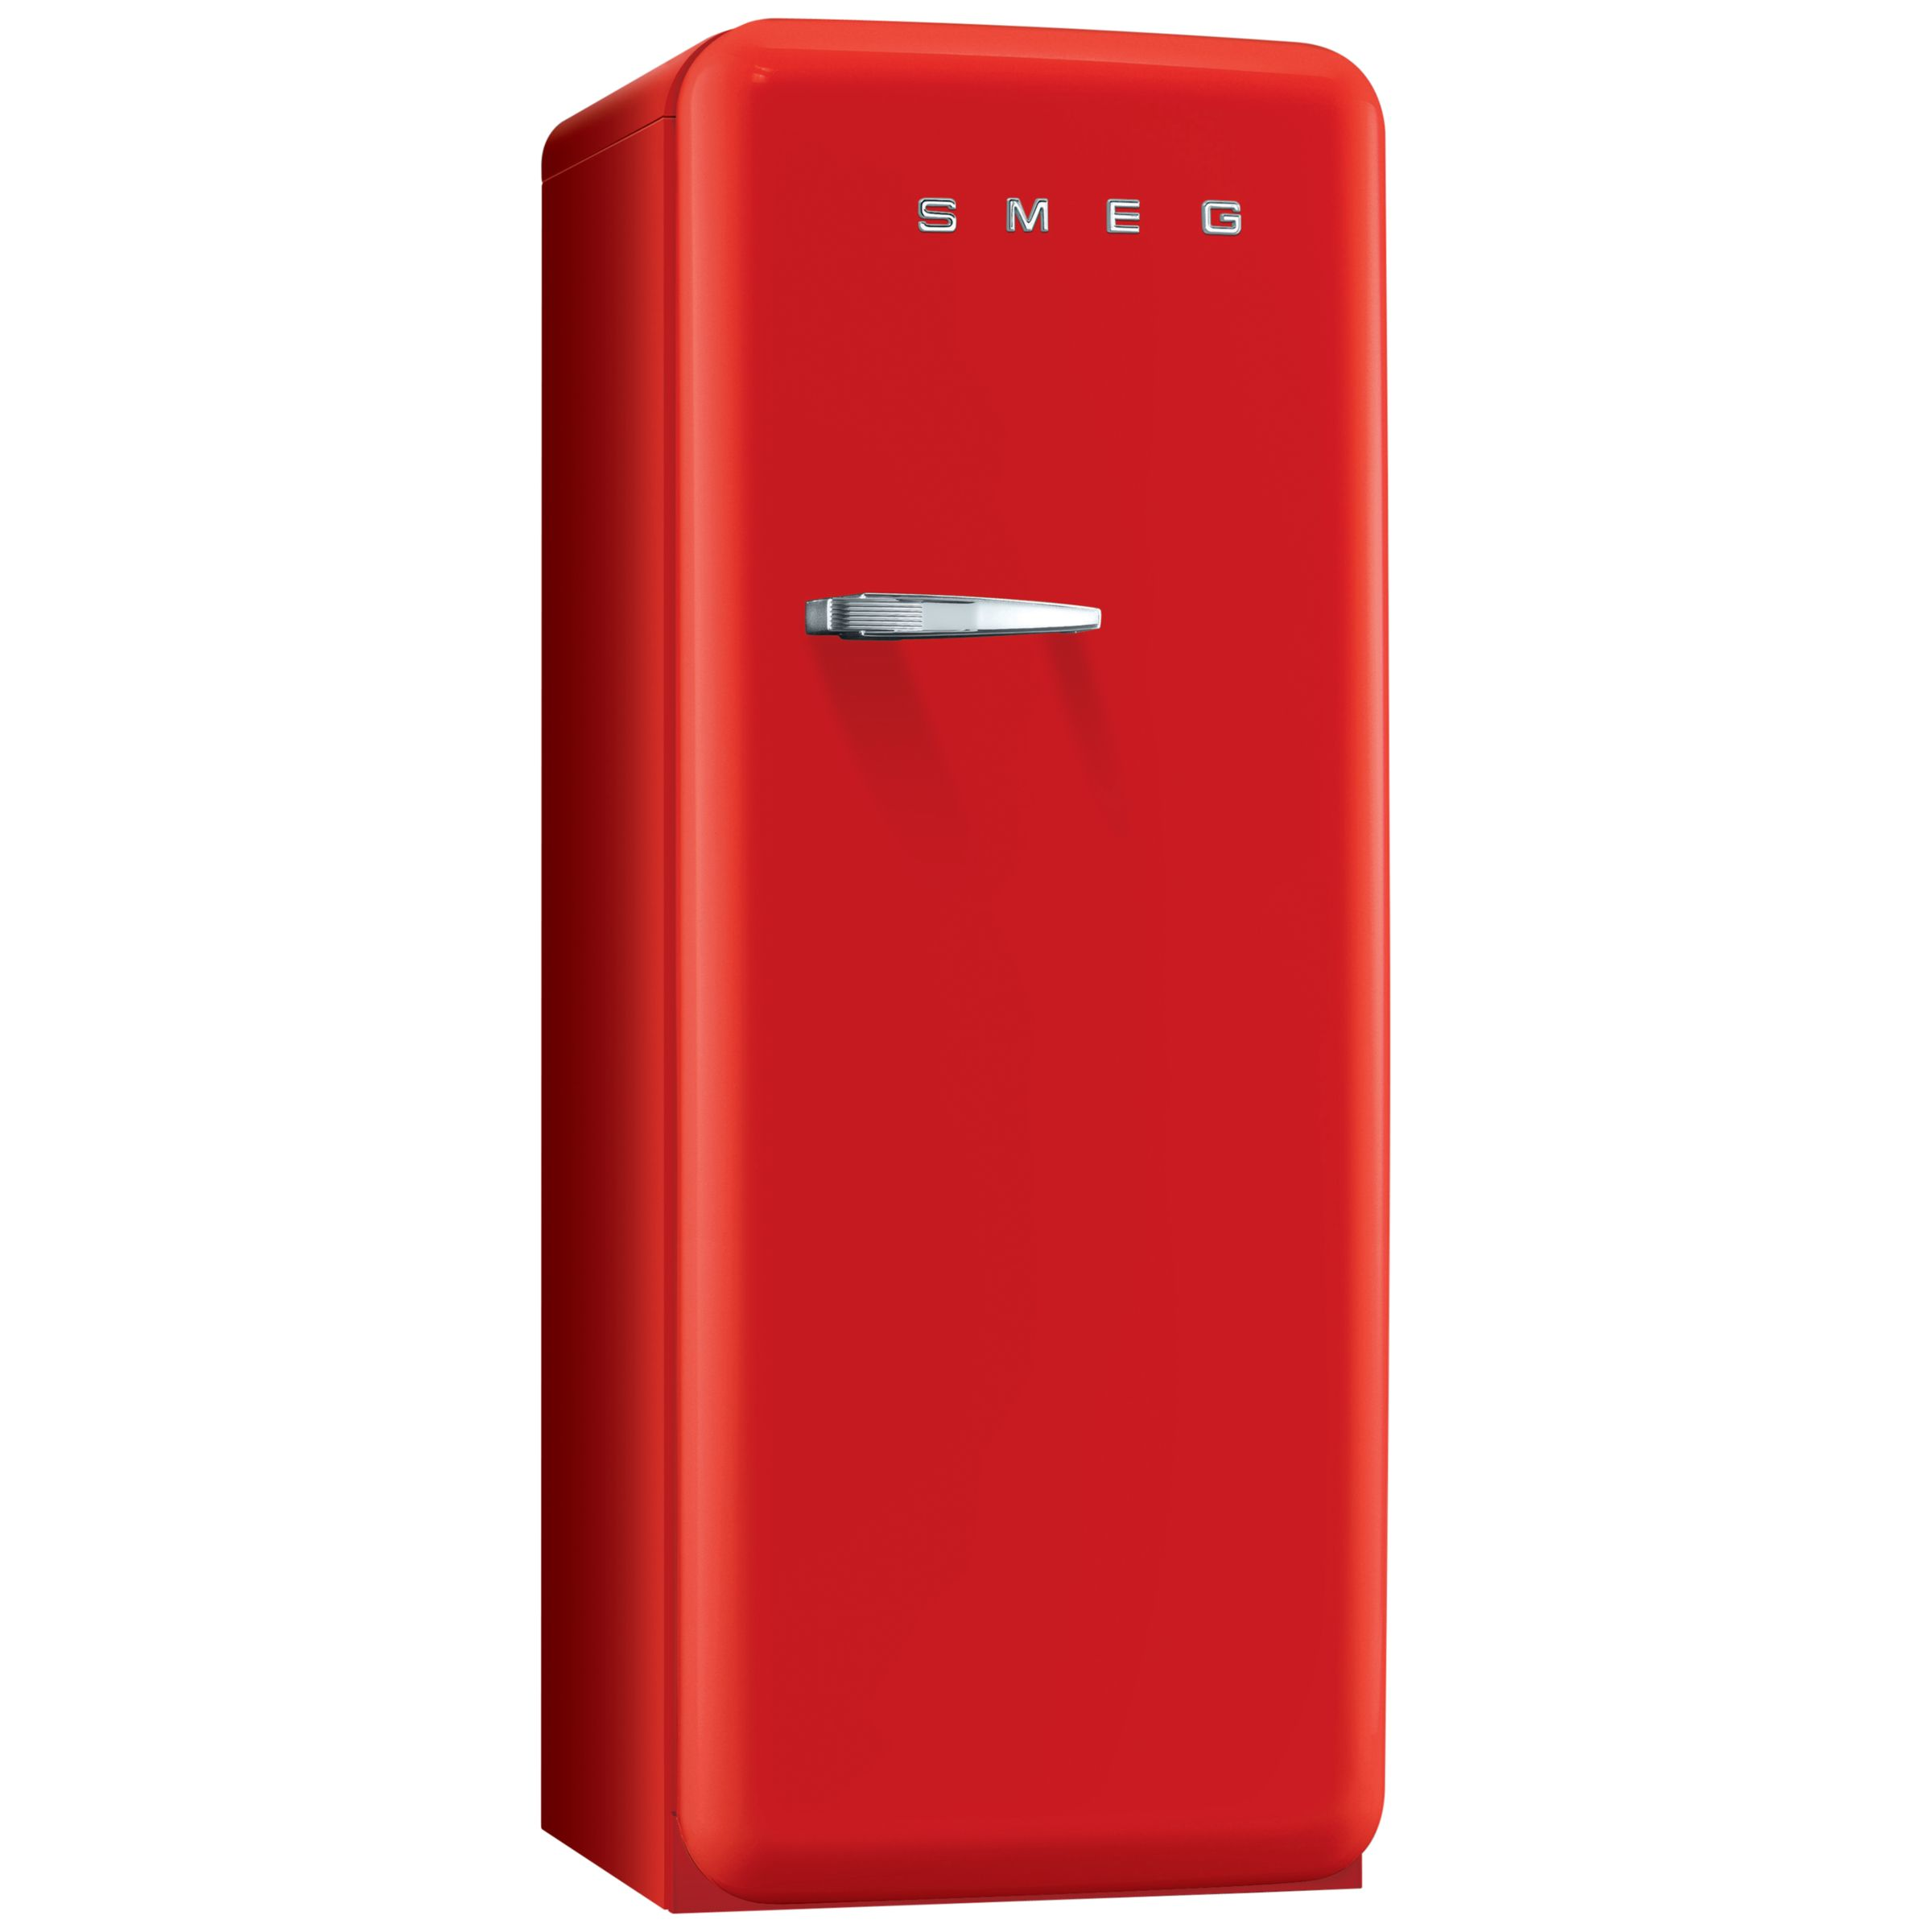 smeg fab28 fridge freezer compare prices at foundem. Black Bedroom Furniture Sets. Home Design Ideas